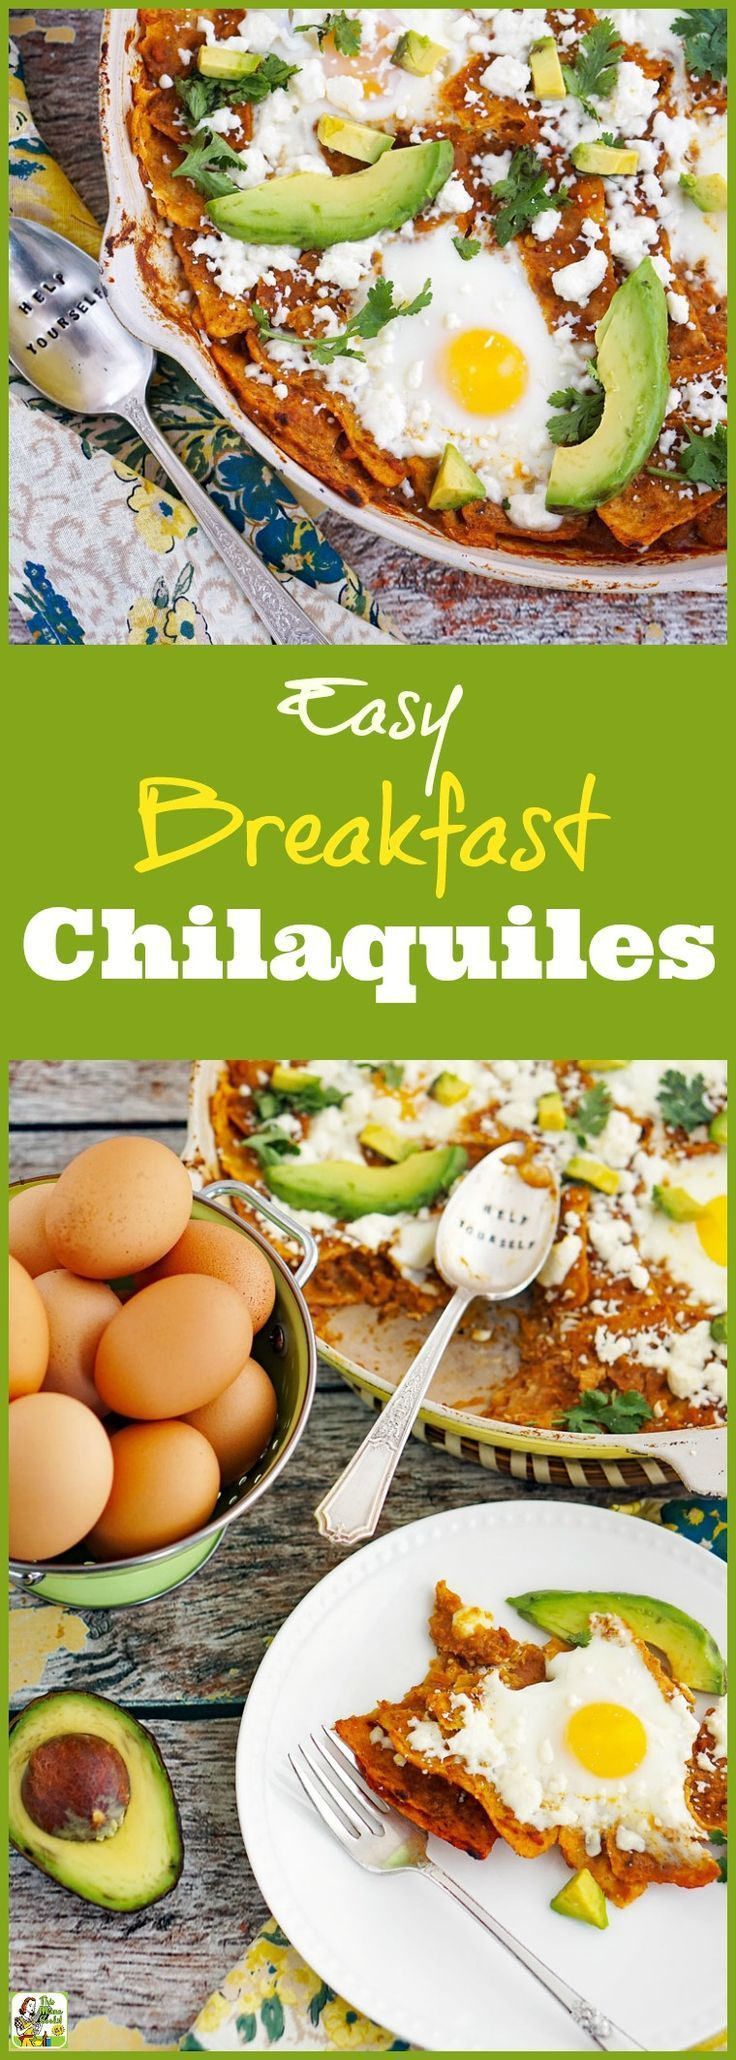 This easy breakfast chilaquiles recipe with eggs makes a terrific brinner recipe, too. Click to get this one pot skillet breakfast recipe that's naturally gluten free.